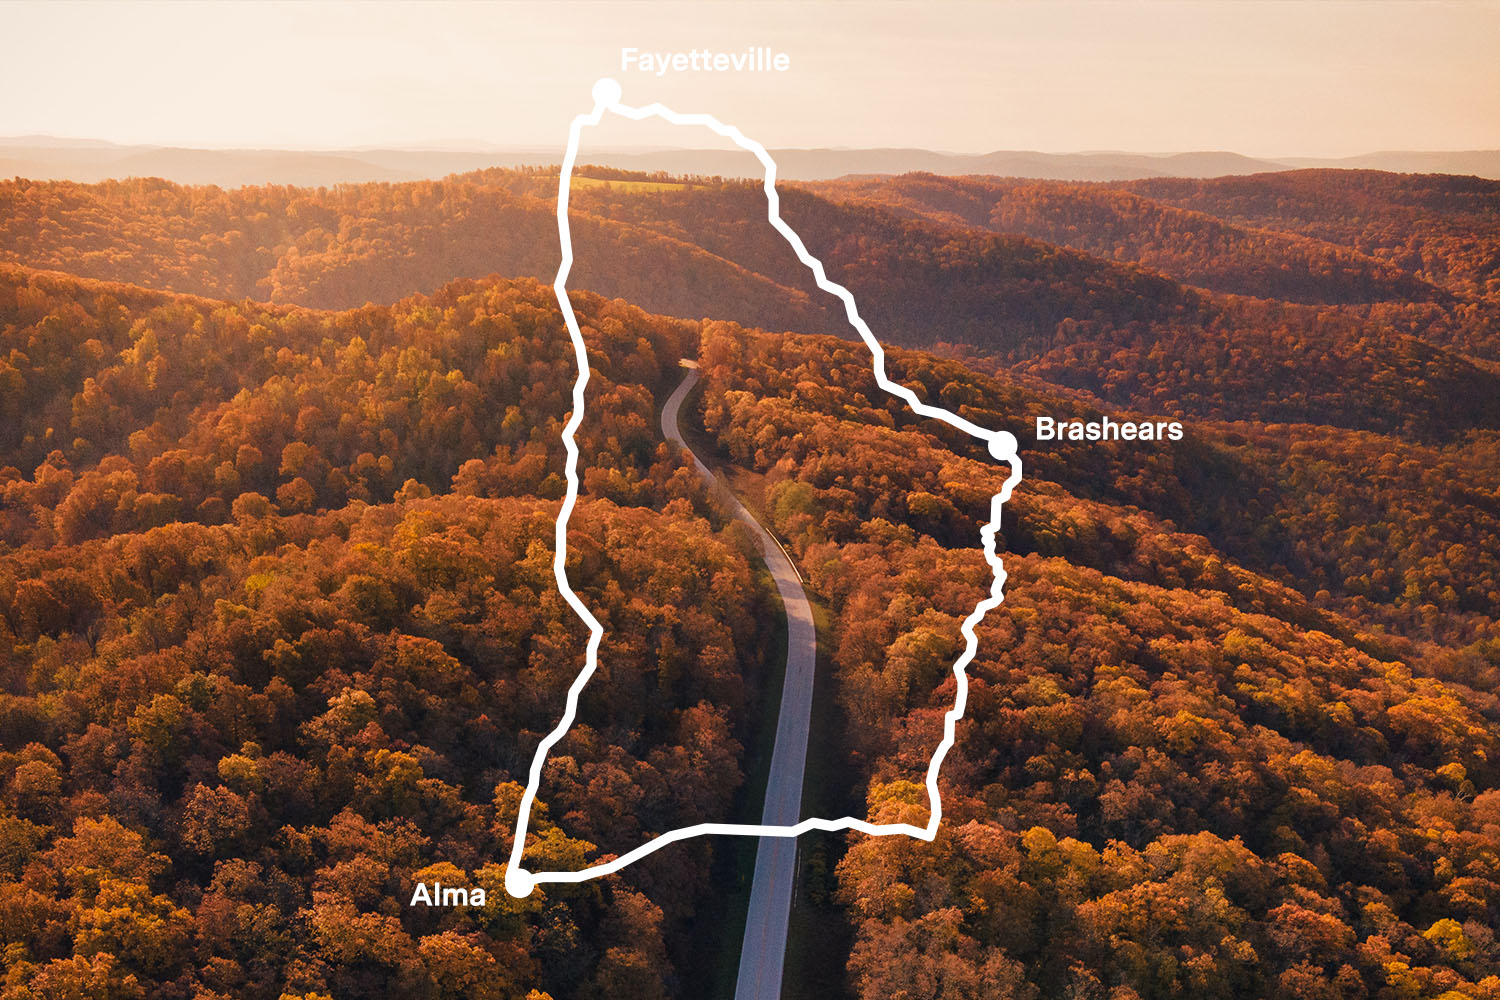 The Best Scenic Drive in the South is AR 23, The Pig's Tail